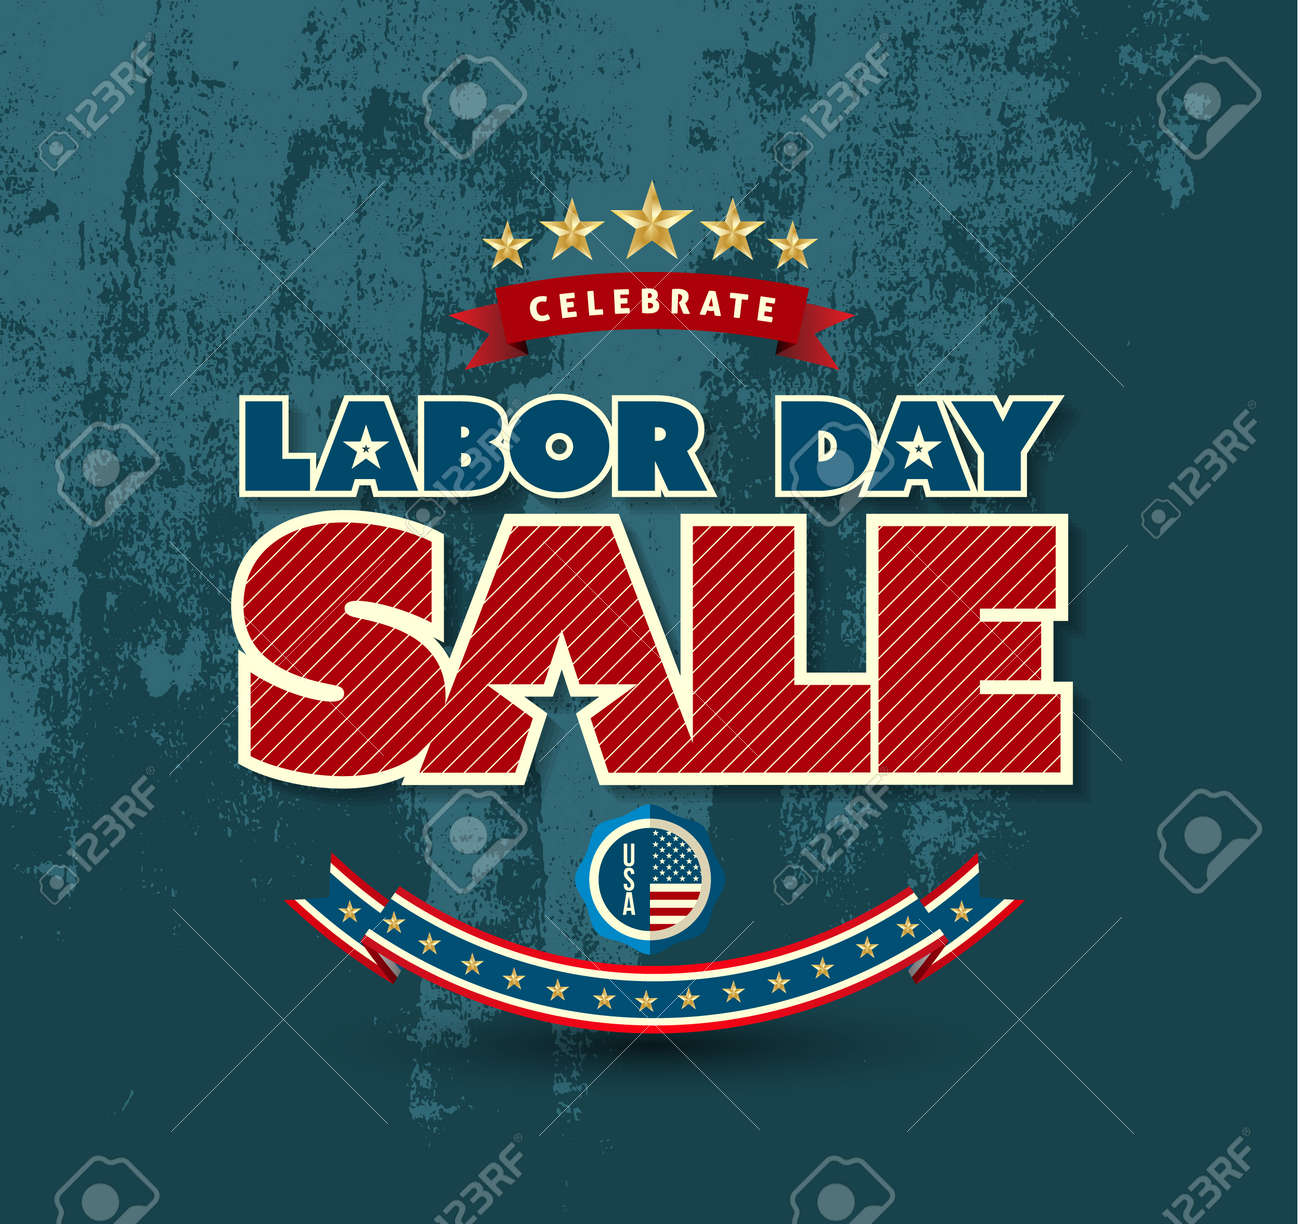 Labor day sale poster. Vector illustration. Can use for advertising and banner promotion. - 43923517